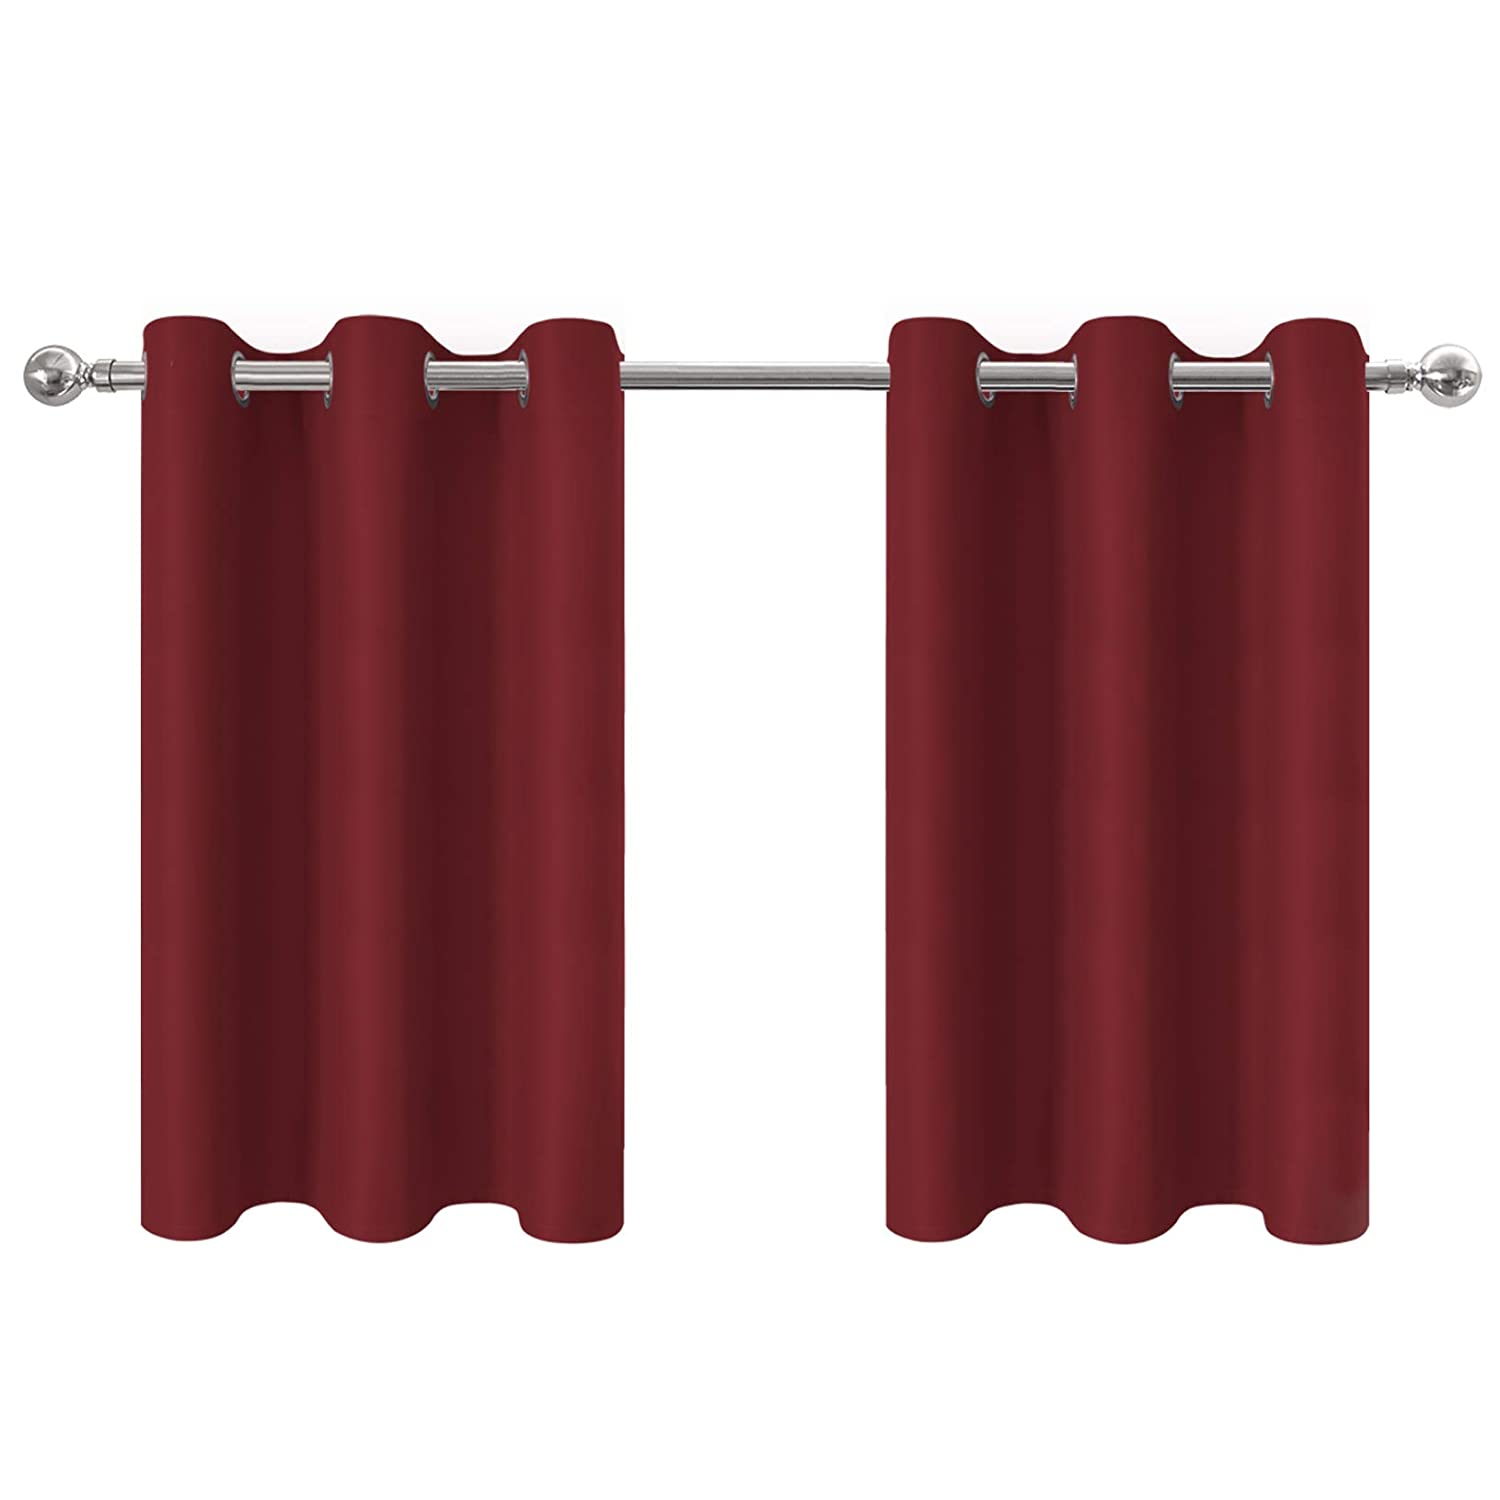 Aquazolax Red Blackout Grommet Tier Curtains Drapes for Basement - Elegant Thermal Insulated Bedroom Window Treatment Curtains/Drapes, W42 x L36 Inches, Burgundy, 2 Panels